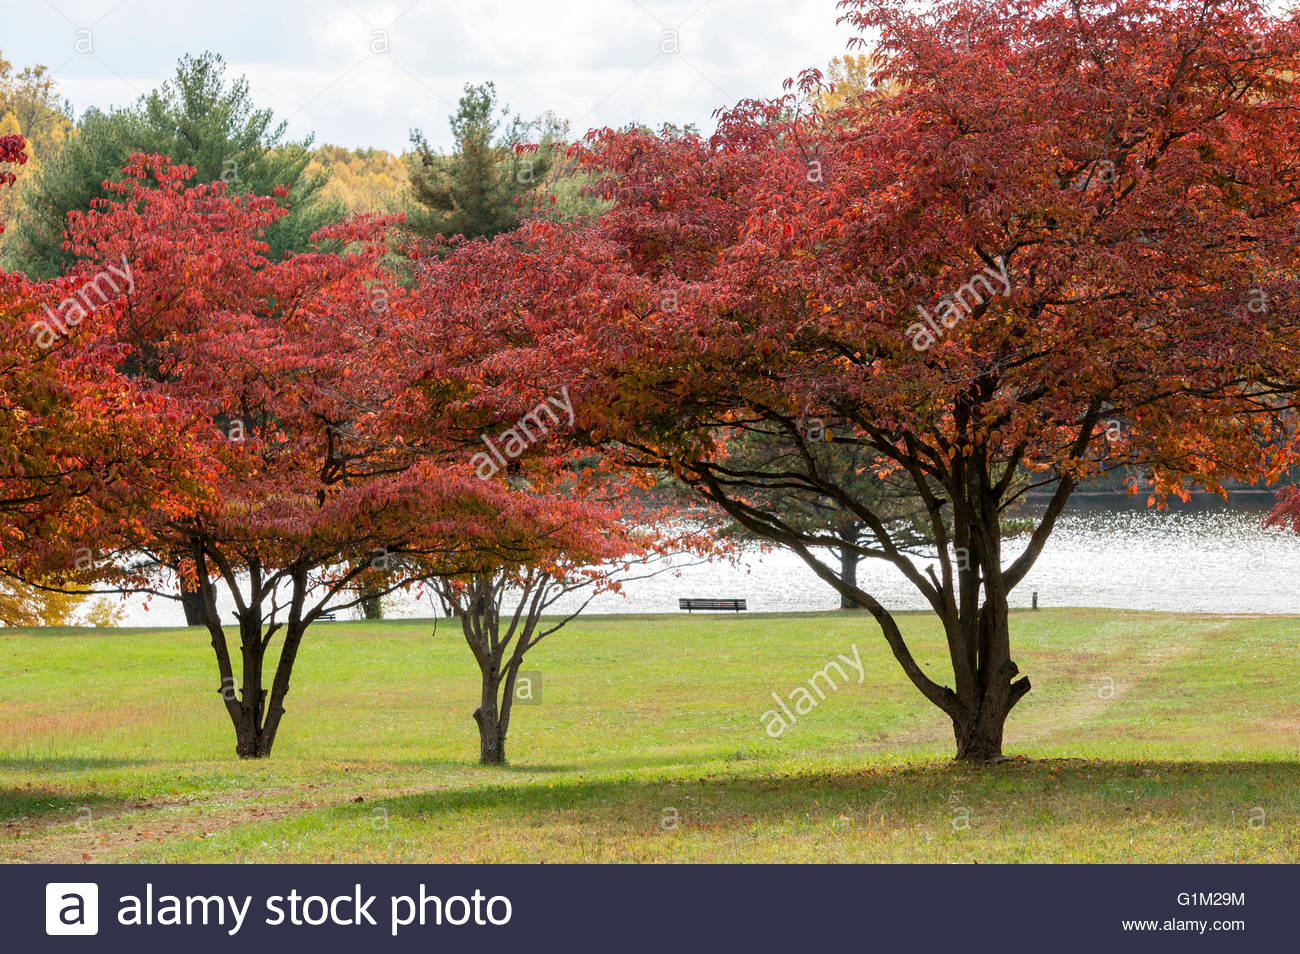 The Red Leaves And Berries Of Dogwood Trees Contribute To Peaking